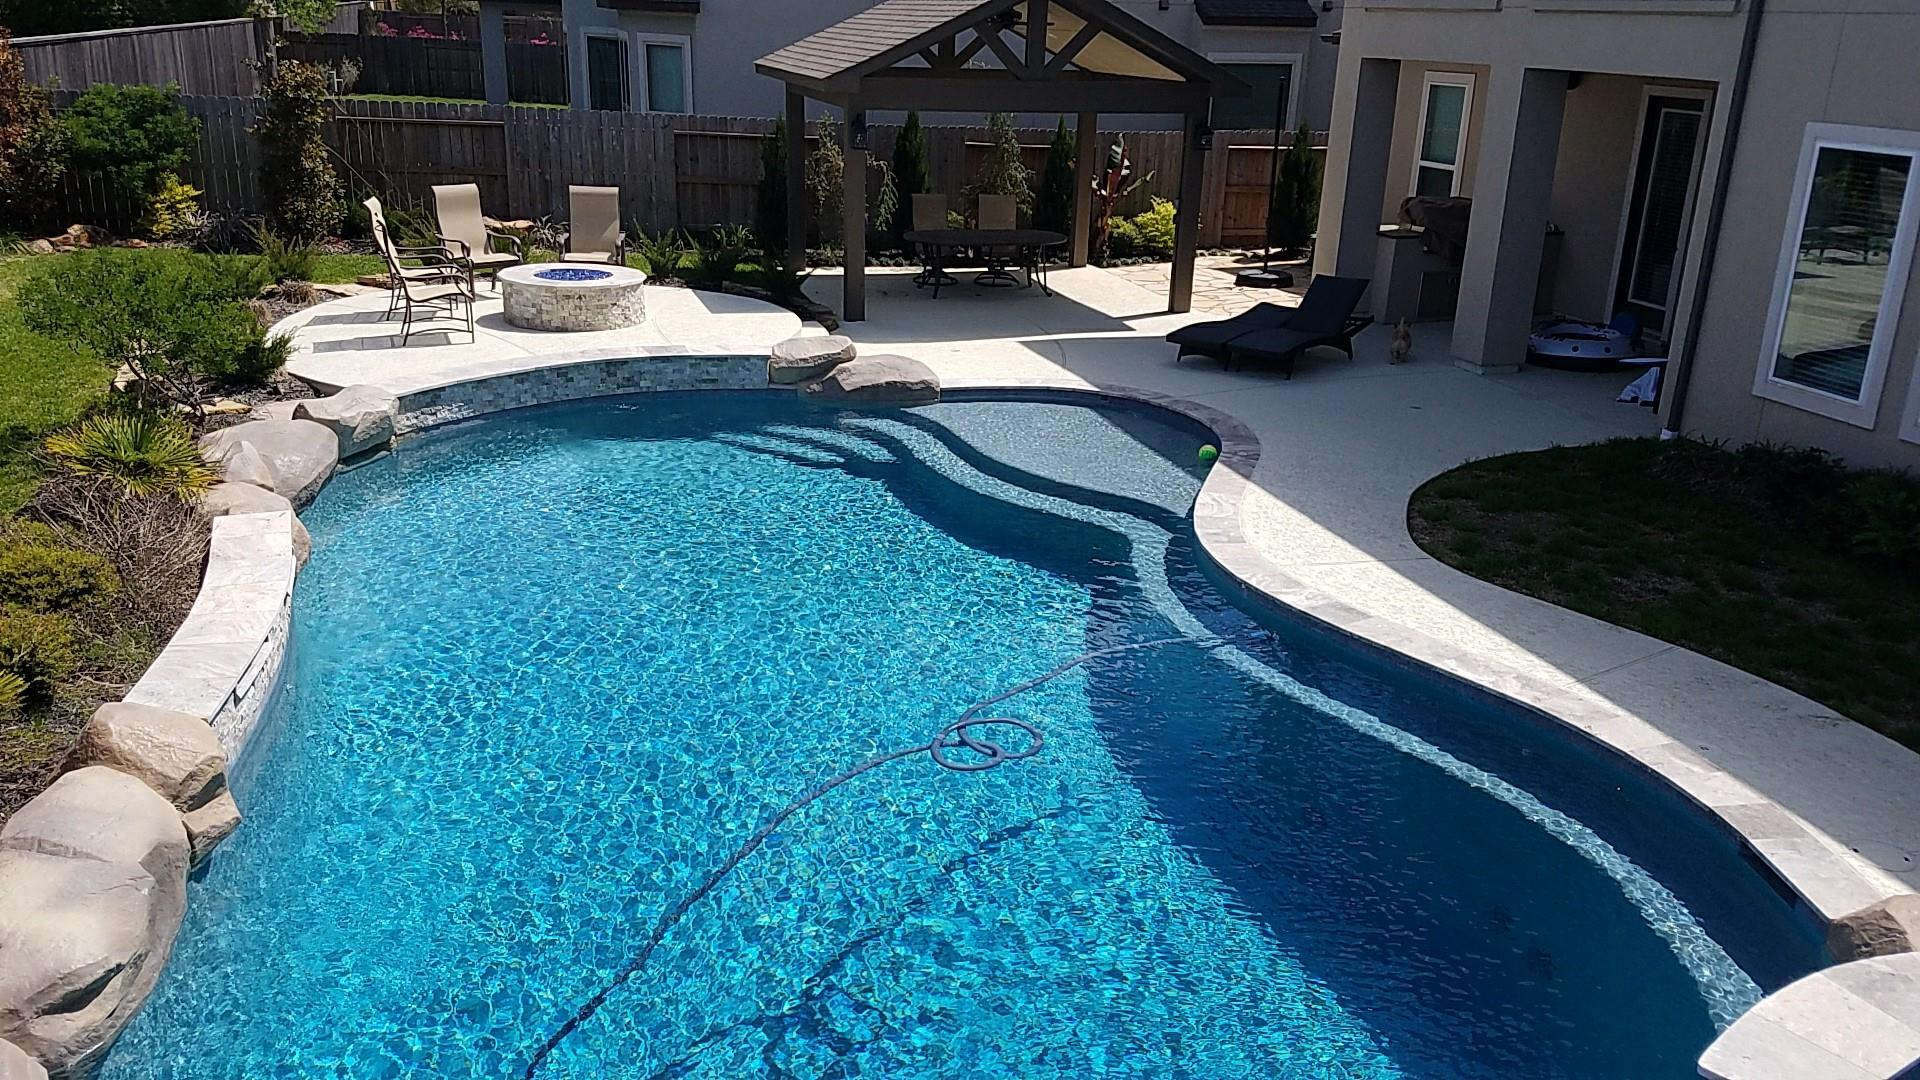 Precision Pools & Spas image 95